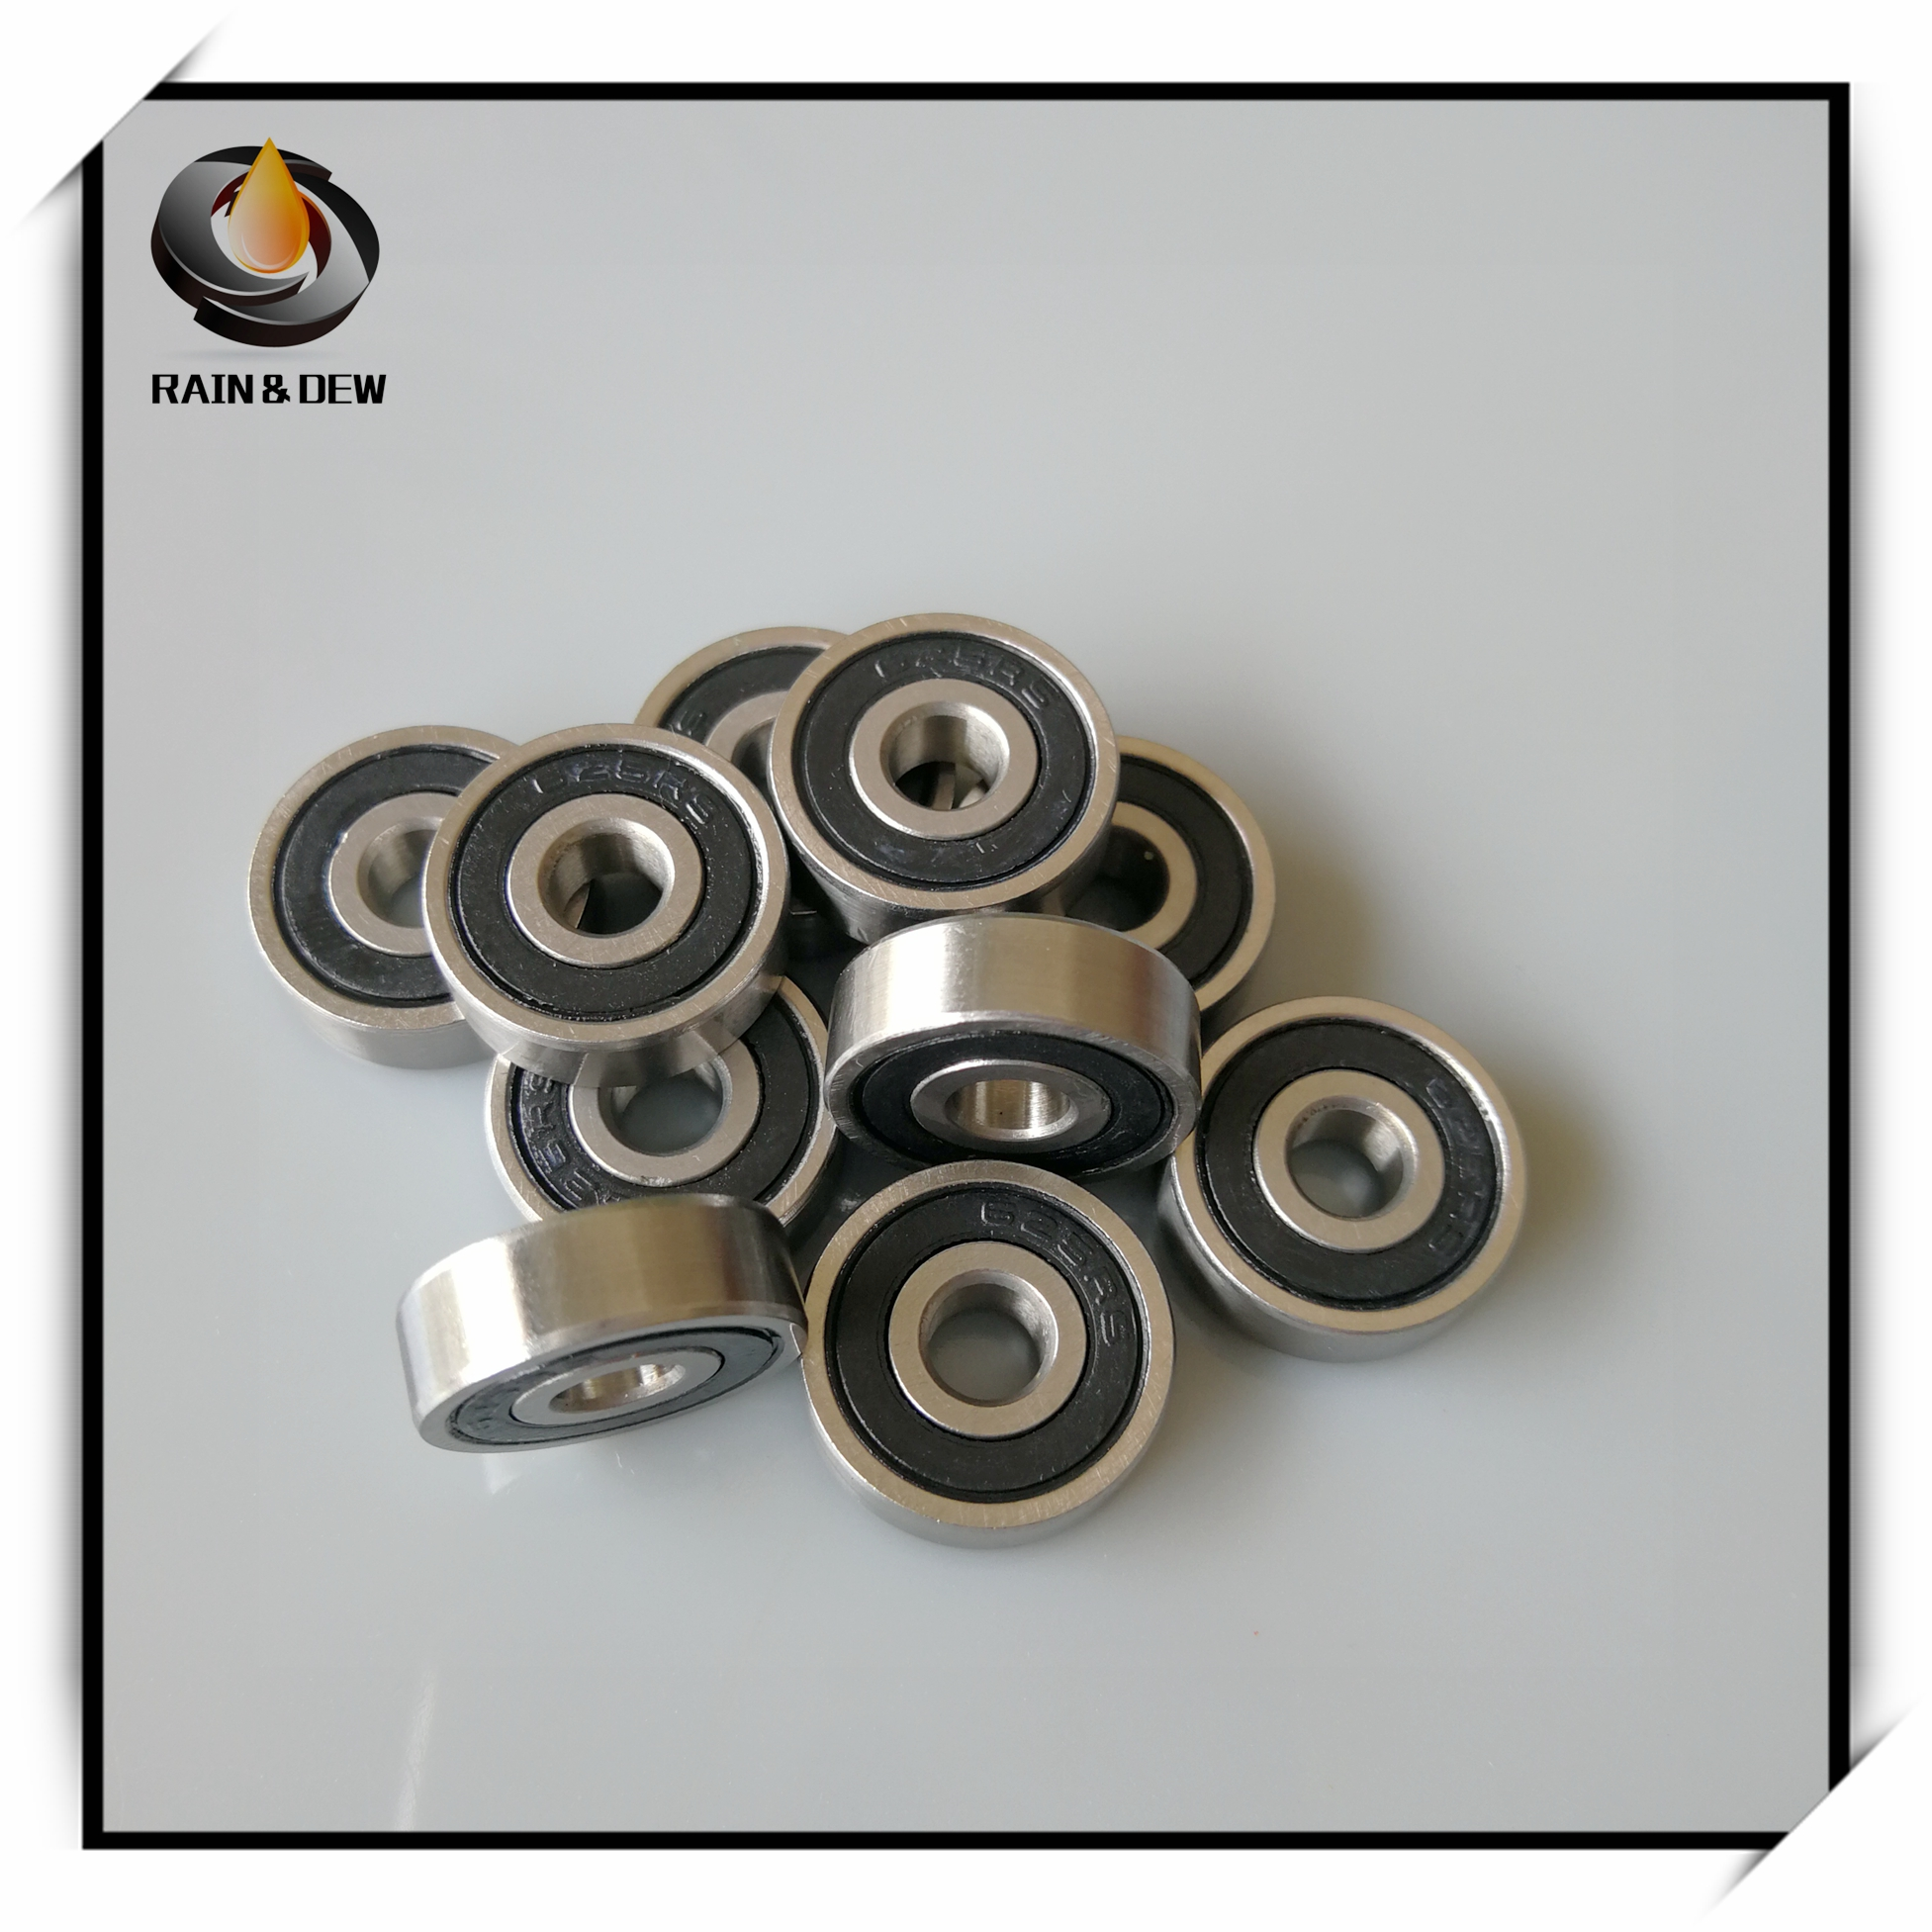 10pcs F605-2RS Flanged Metal Rubber Sealed Ball Bearing F605RS 5x14x5 mm